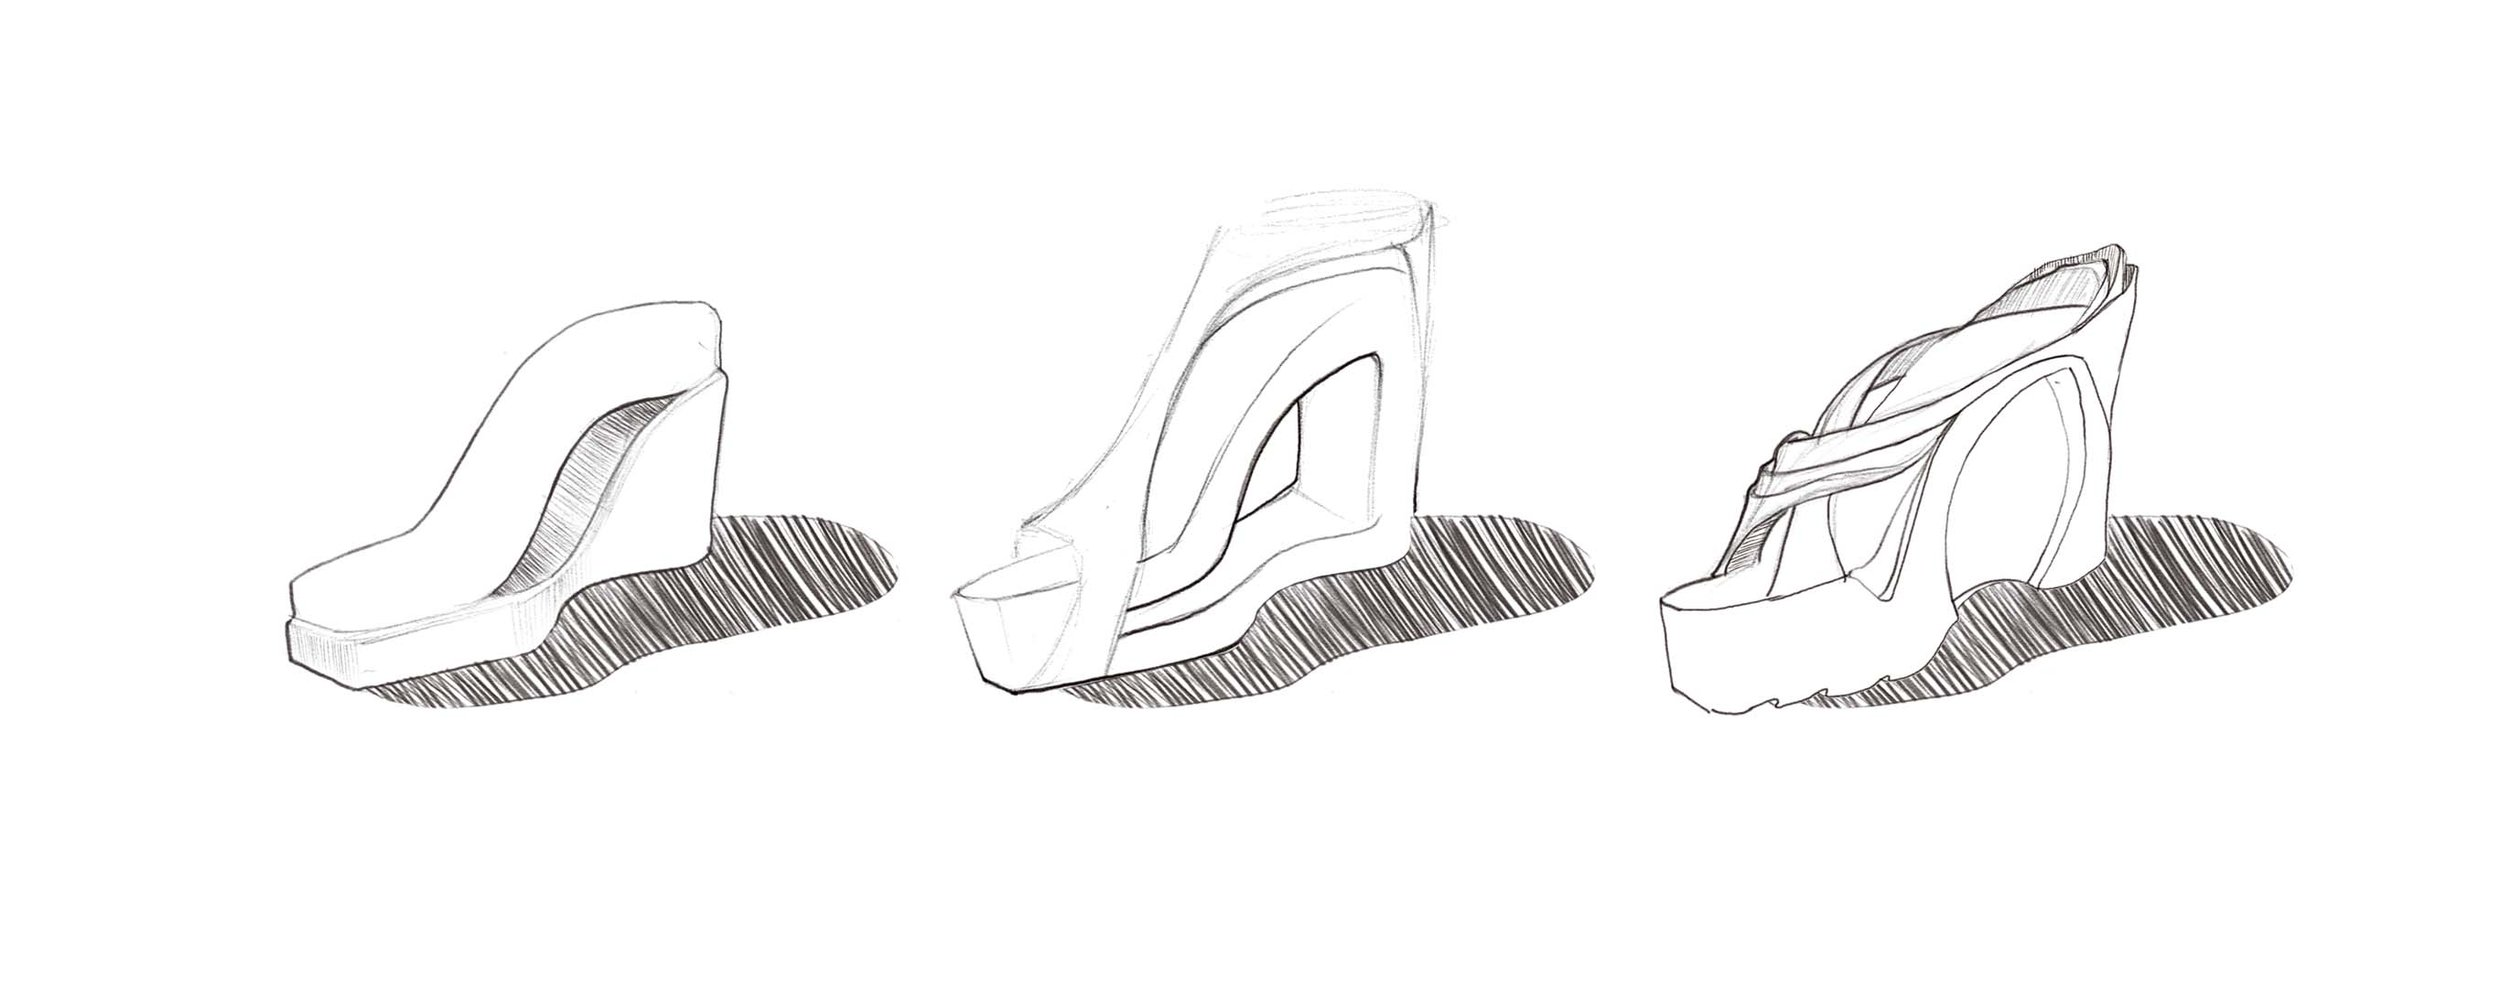 Quick platforms concept sketches